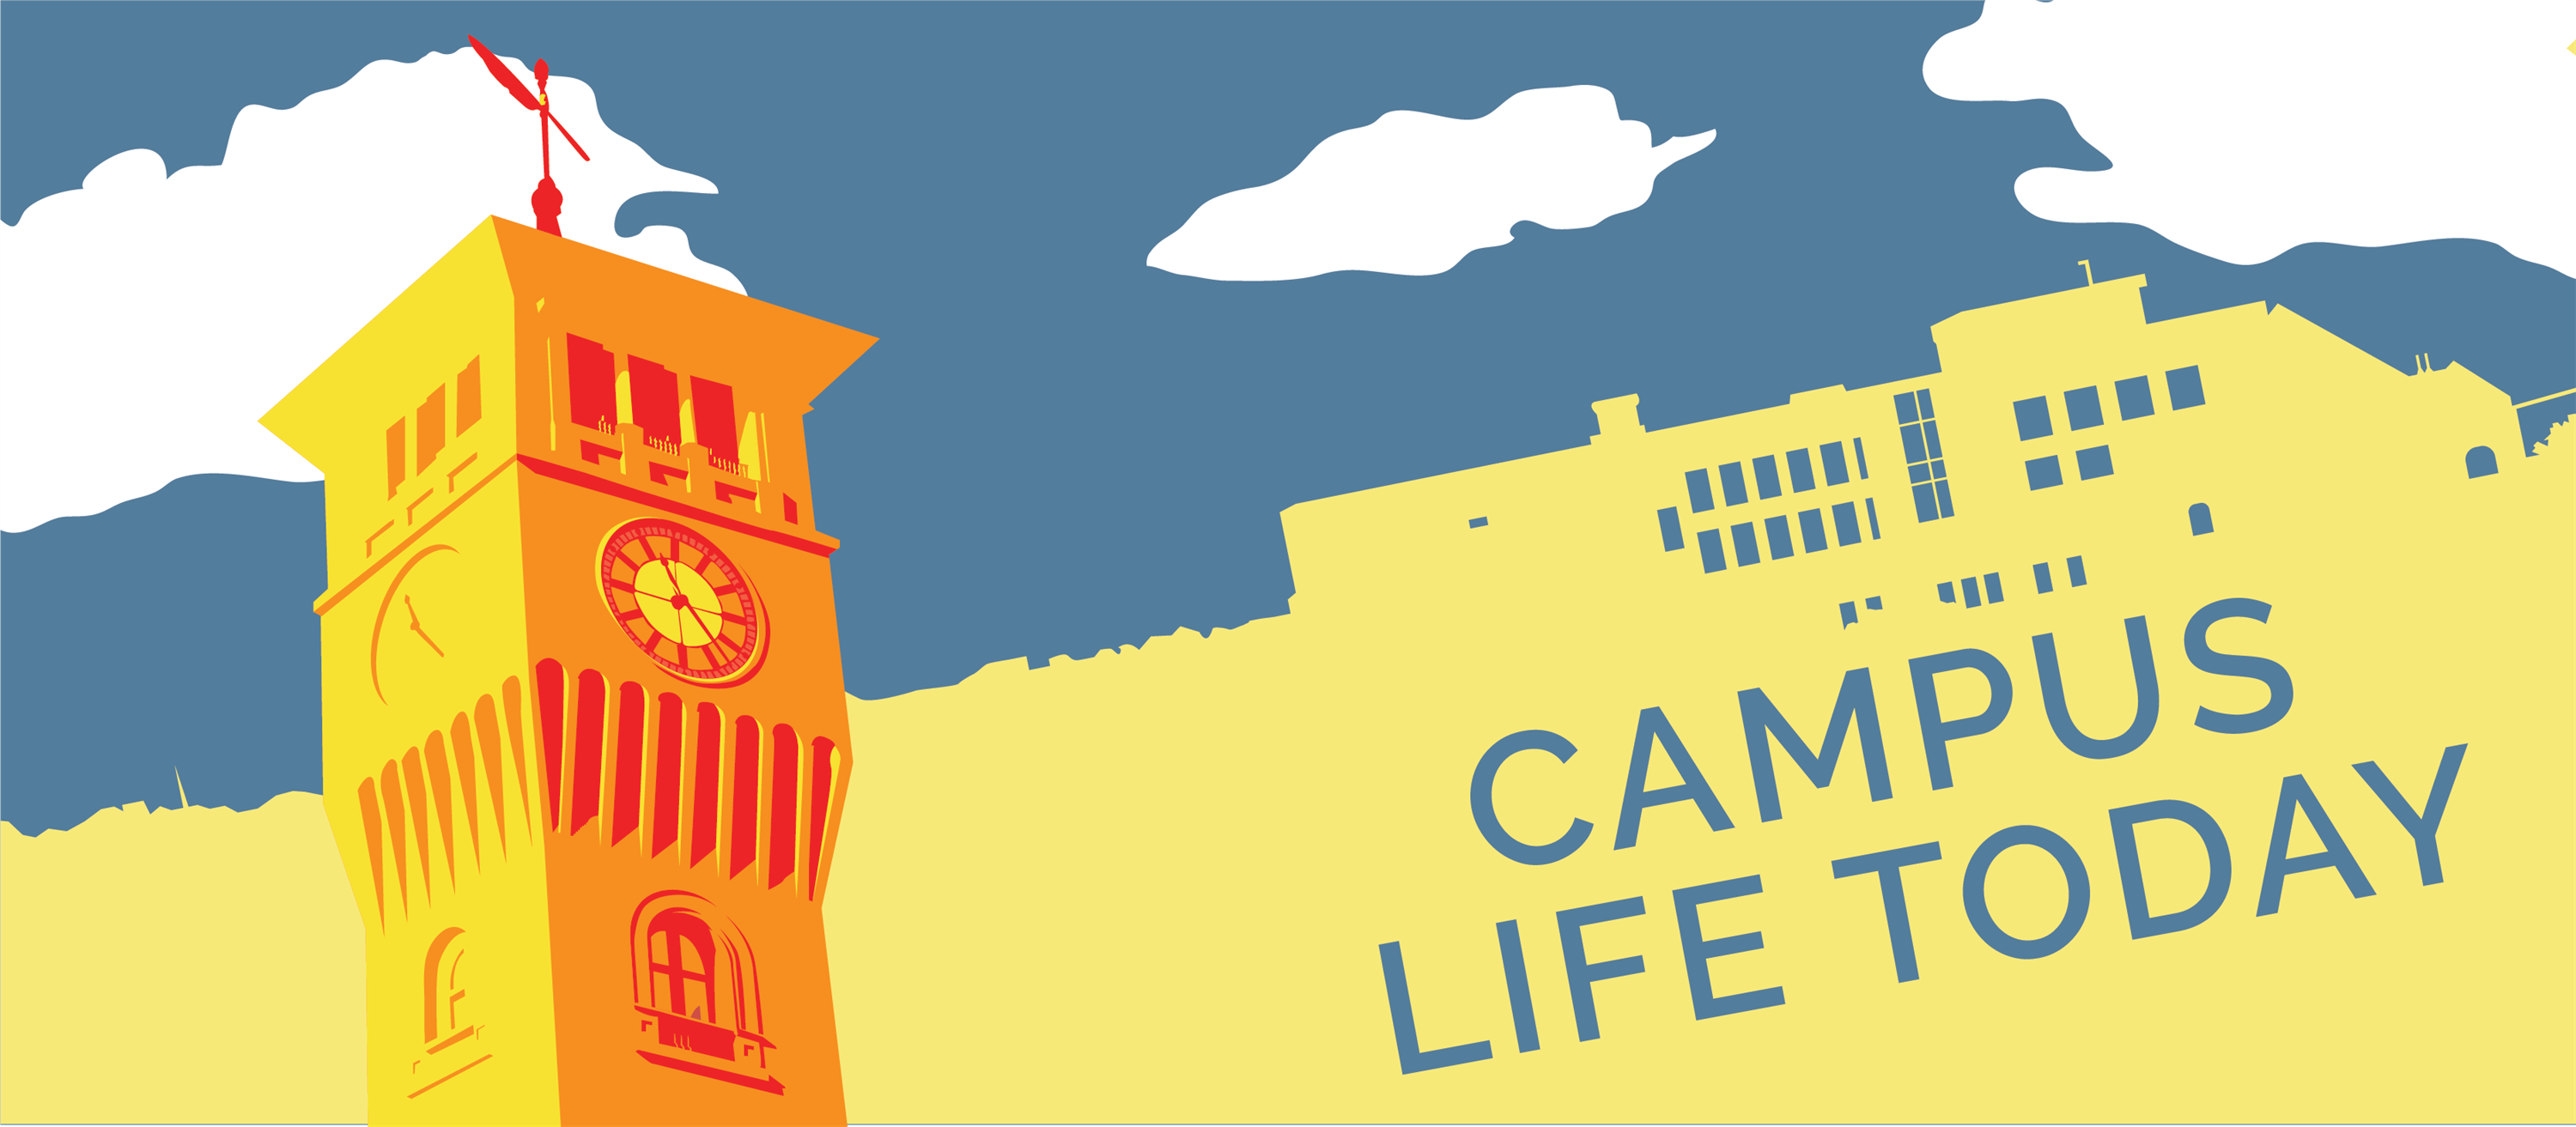 Campus Life Today Header